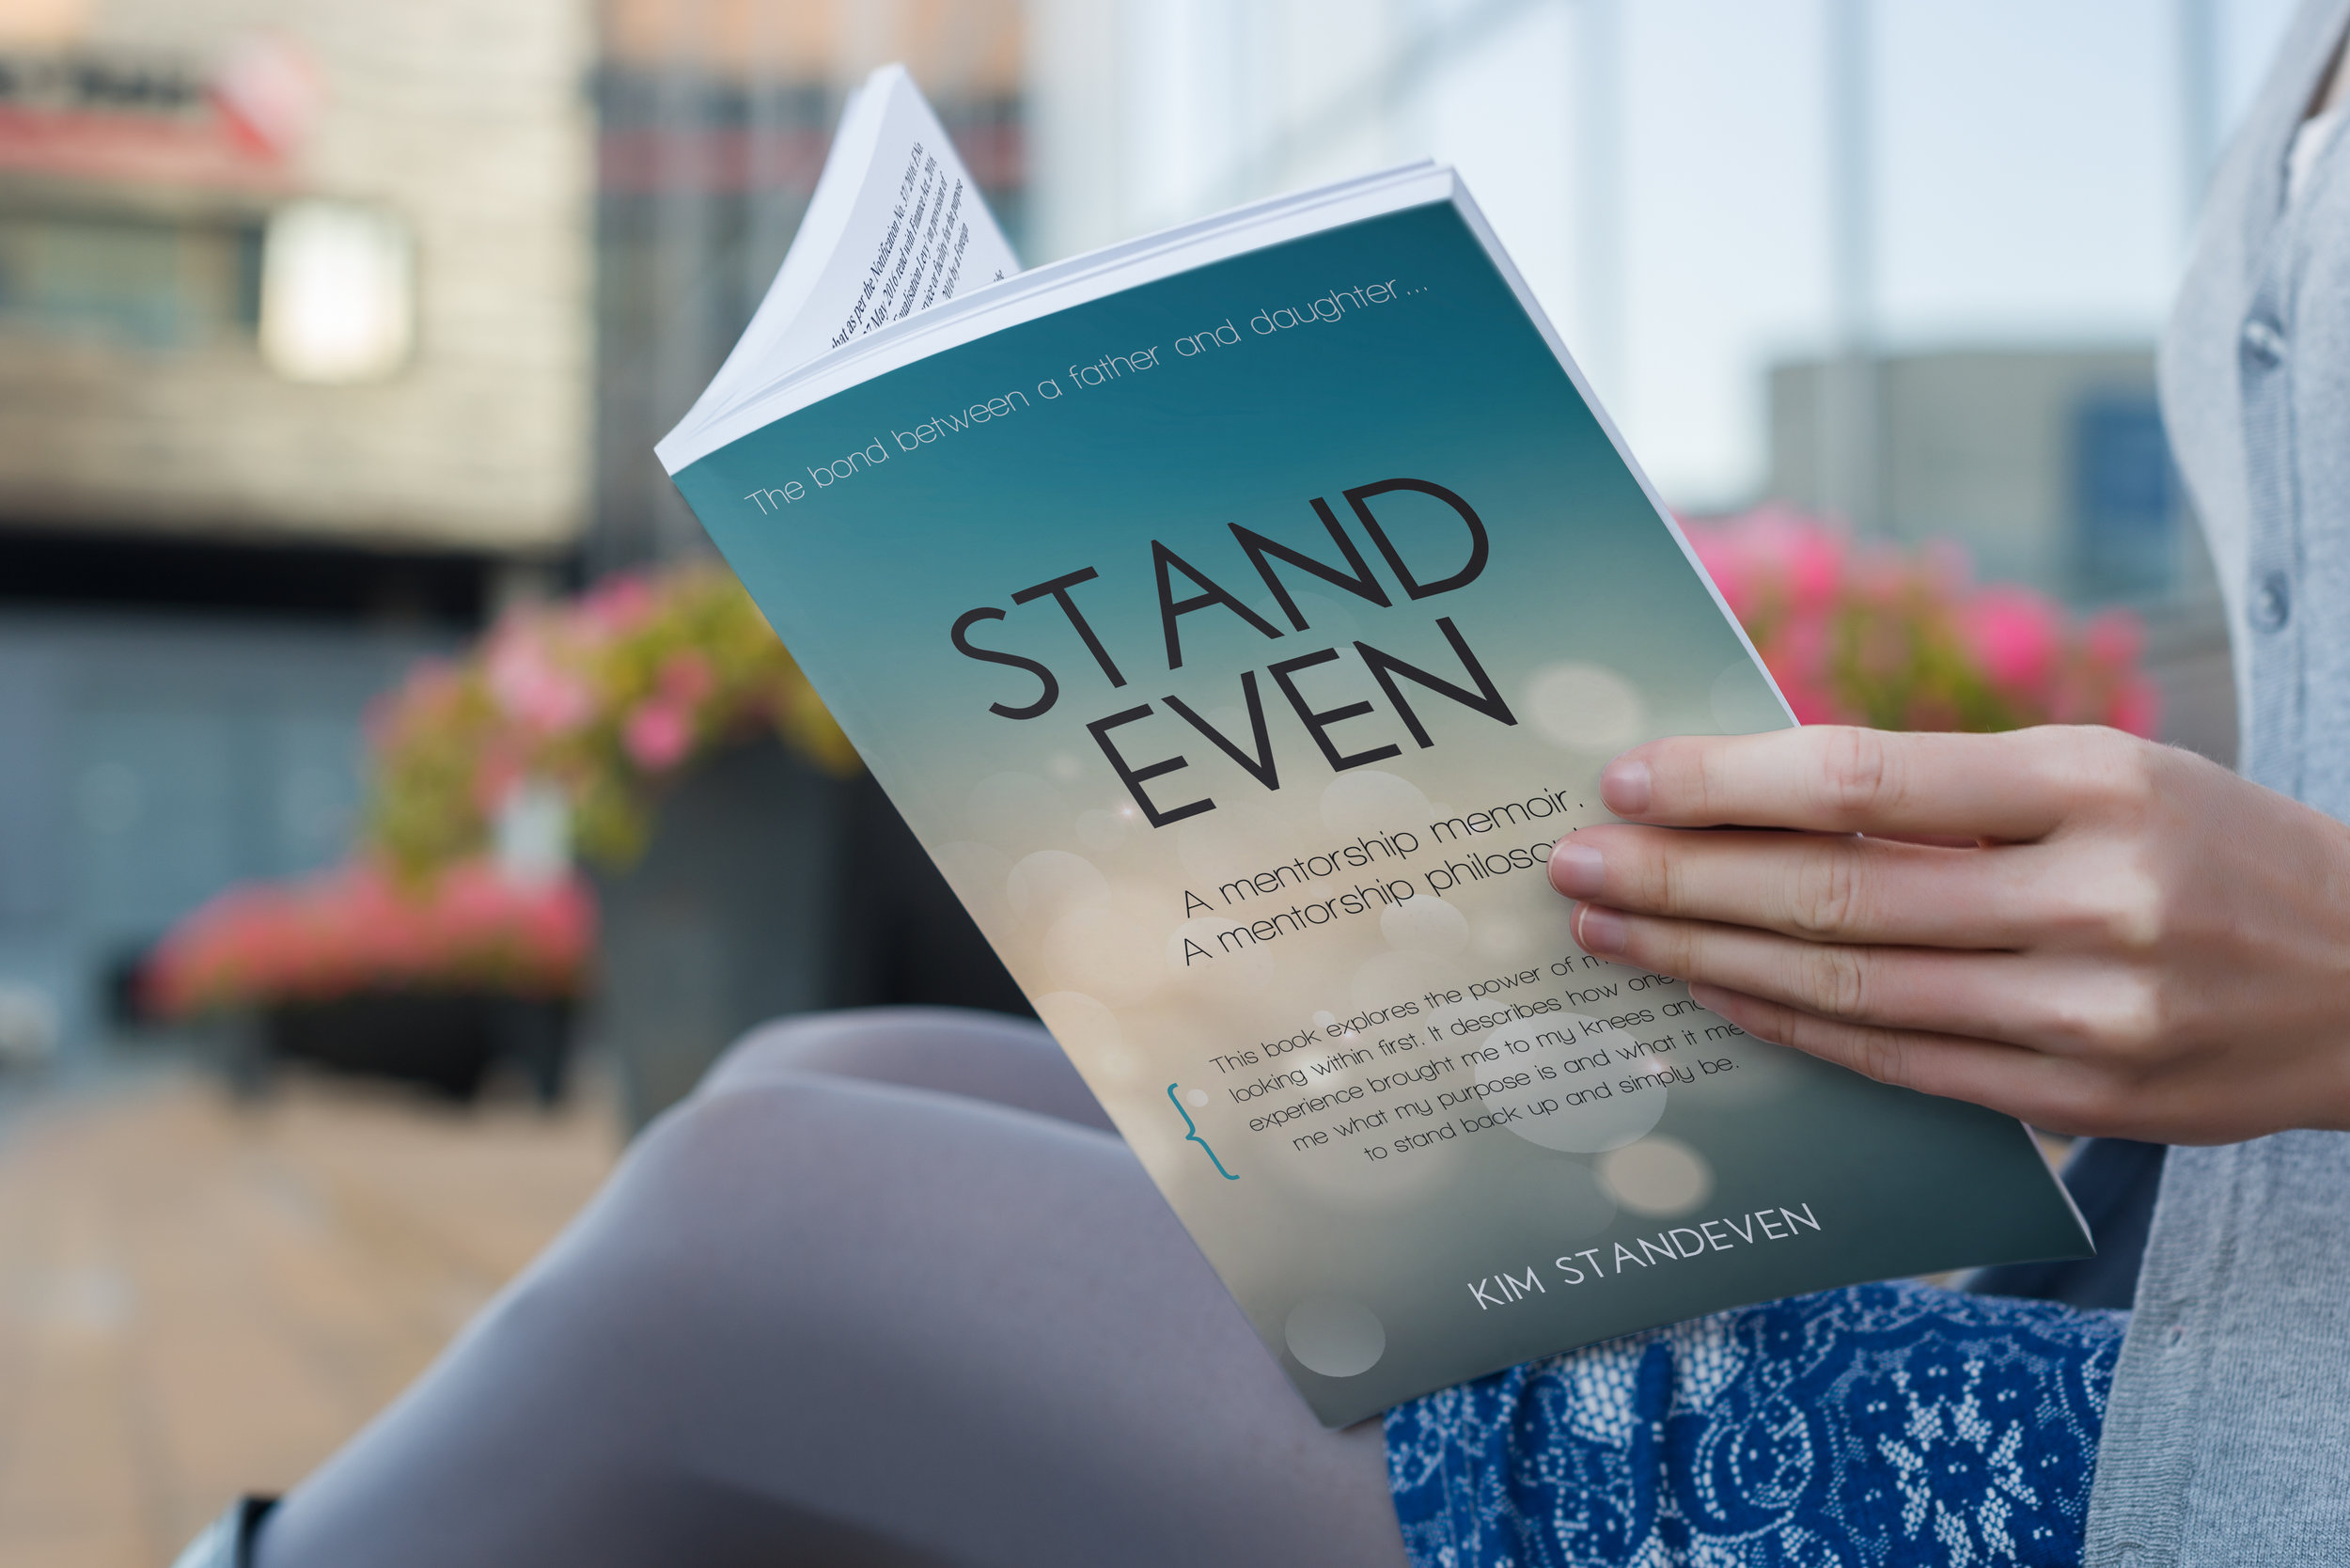 STAND EVEN - A touching story about my Dad and I. He taught me how to see with my soul rather than my eyes.